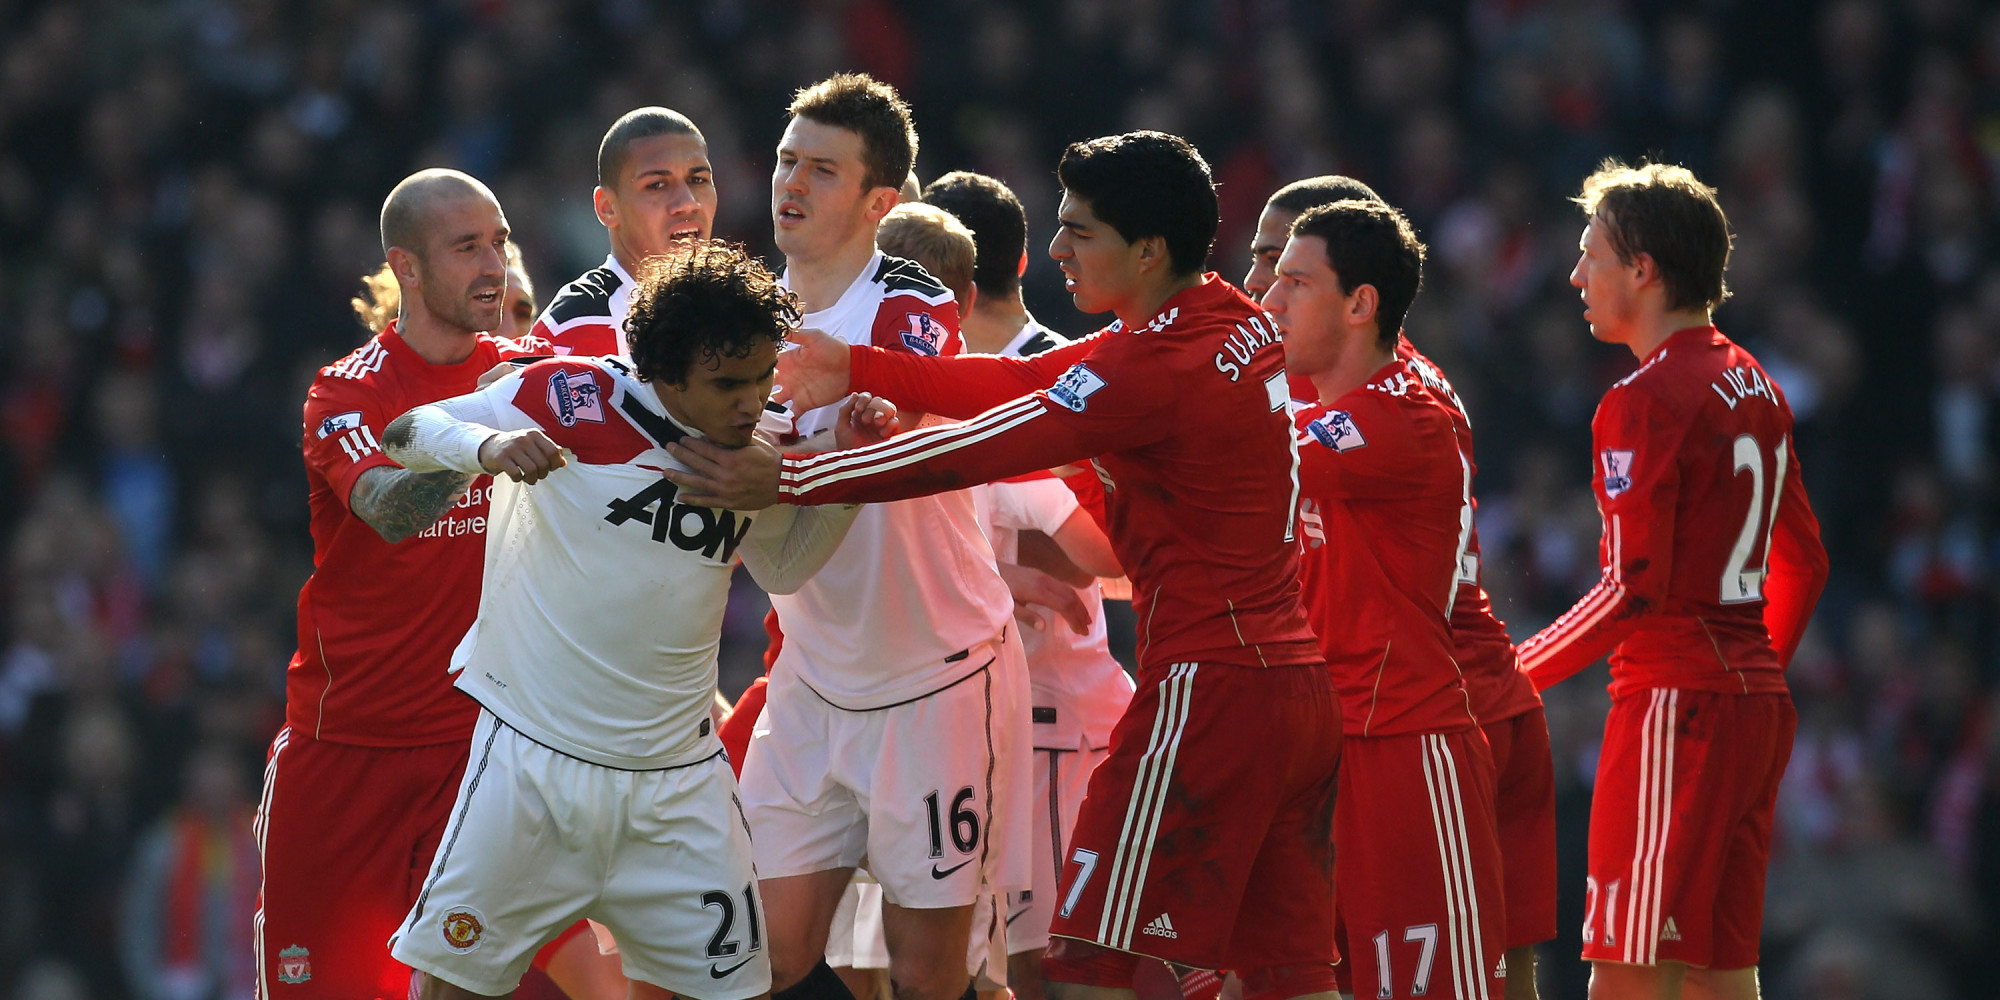 man united vs liverpool - photo #45